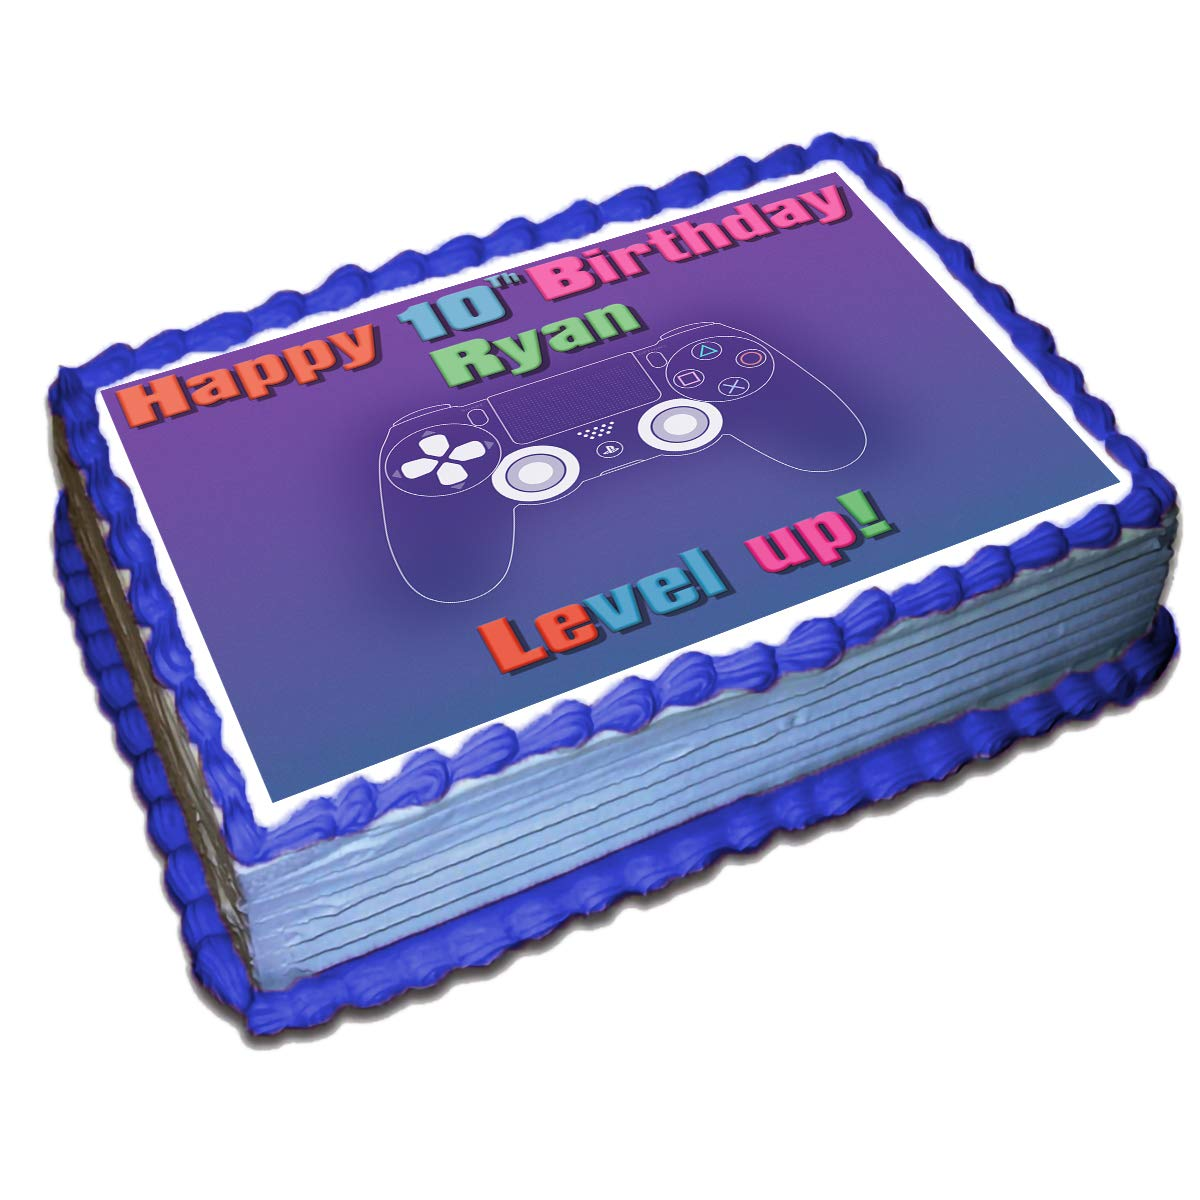 Swell Gamer Ps4 Personalized Cake Toppers Icing Sugar Paper 1 4 8 5 X Personalised Birthday Cards Fashionlily Jamesorg